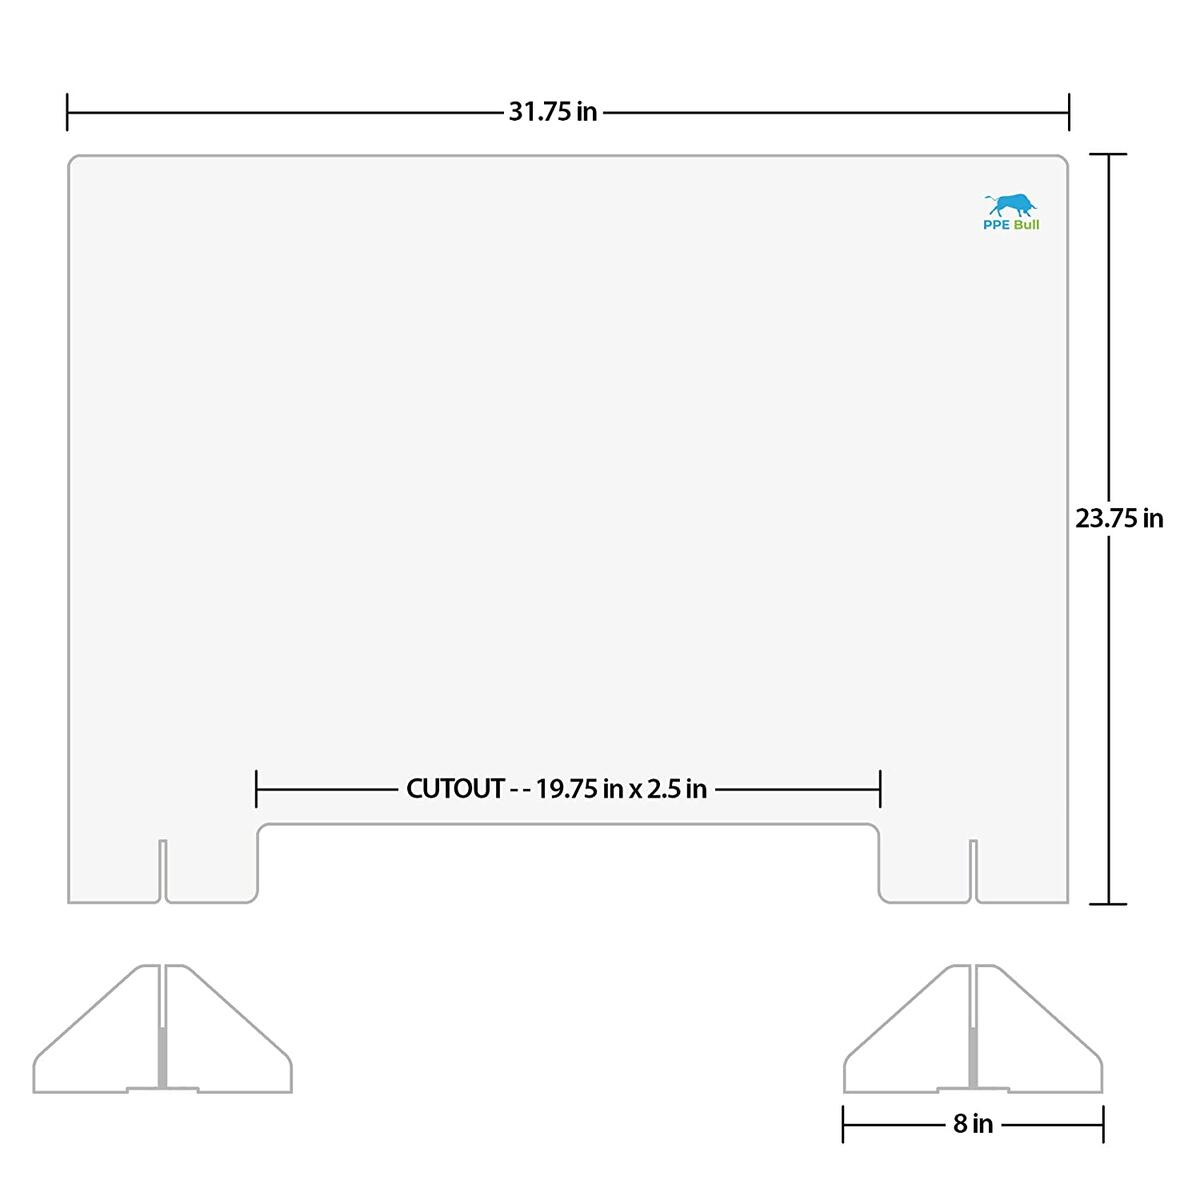 Sneeze Guard for Desk, Counter and Table - 2 Pack, 32W x 24H, 3/16 Thickness, Freestanding Clear Acrylic Shield for Business and Customer Safety, Barrier Against Sneezing & Coughing